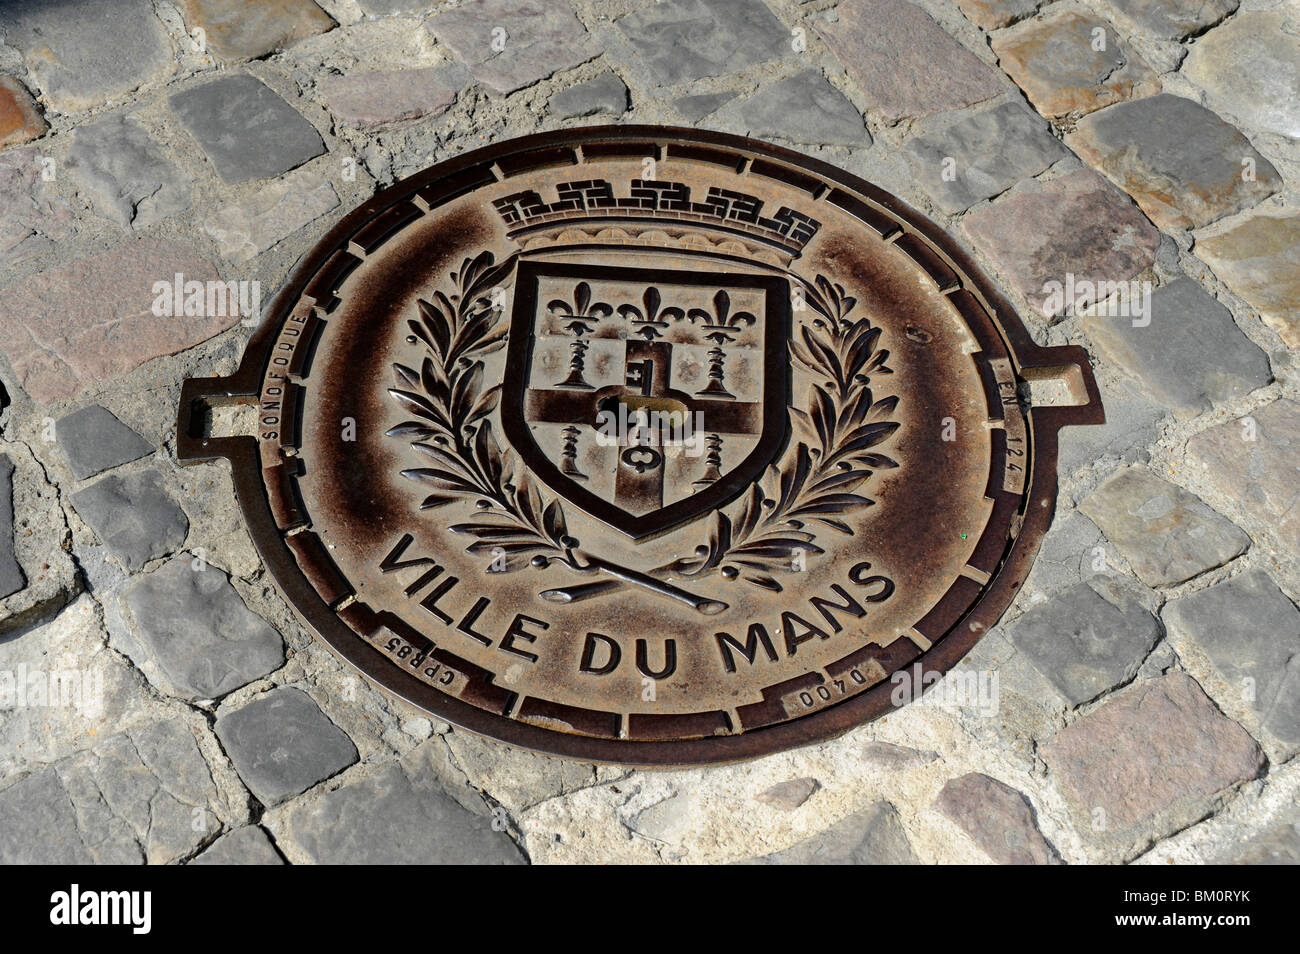 Sever plate wiht Coat of arms of the town,Jacobins place,Plantagenet City, Old town of Le Mans, Sarthe, France - Stock Image